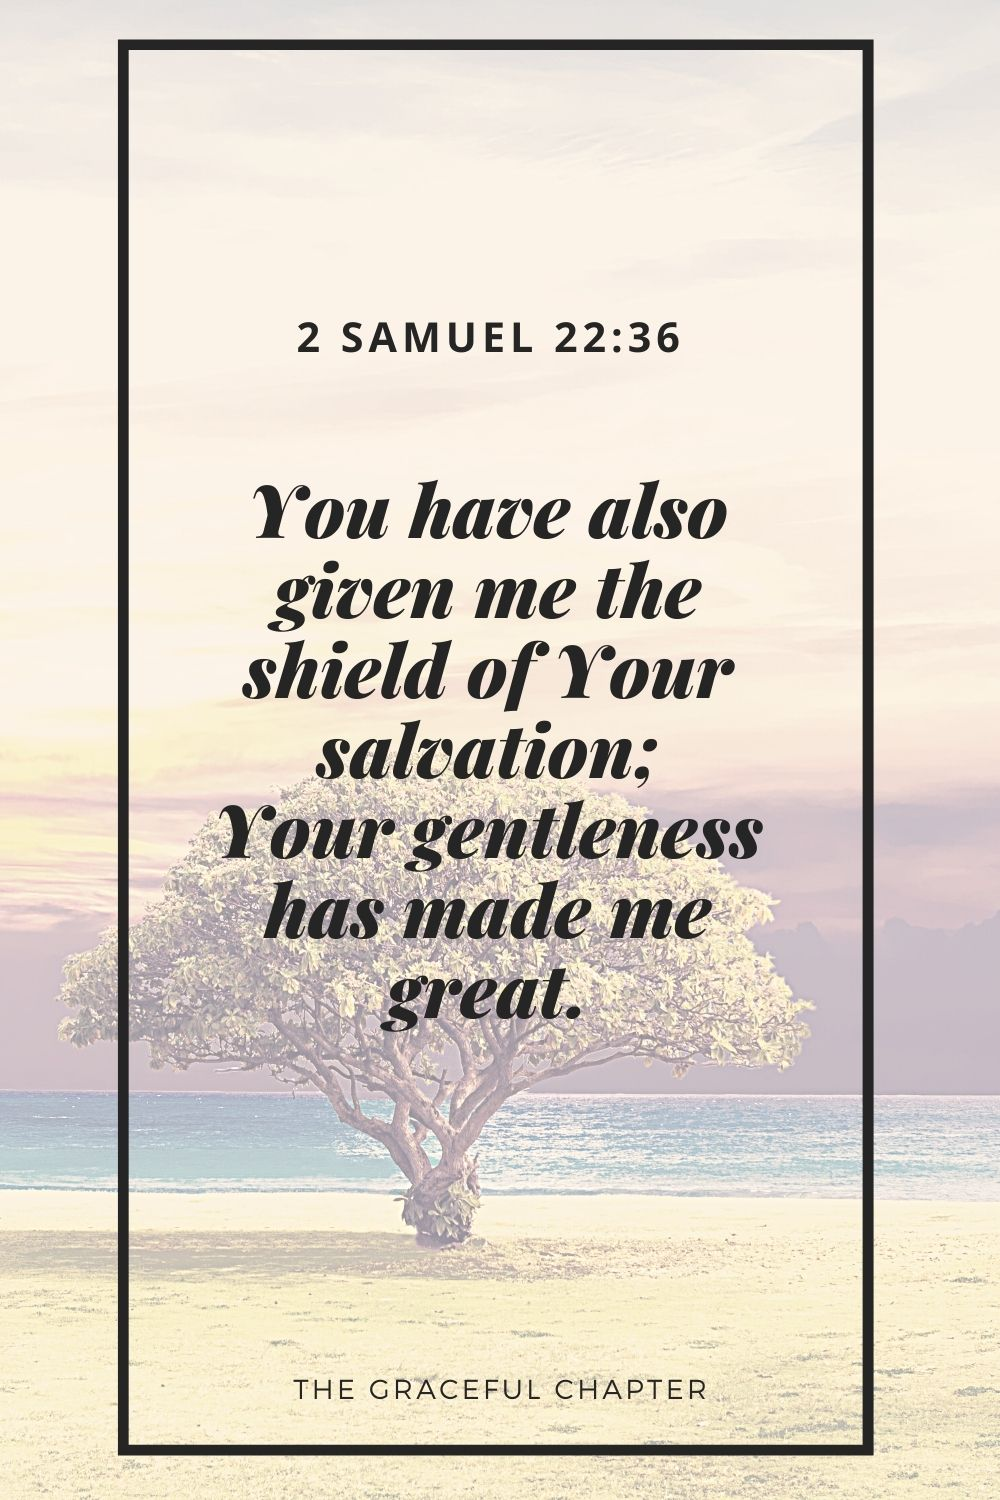 You have also given me the shield of Your salvation; Your gentleness has made me great. 2 Samuel 22:36